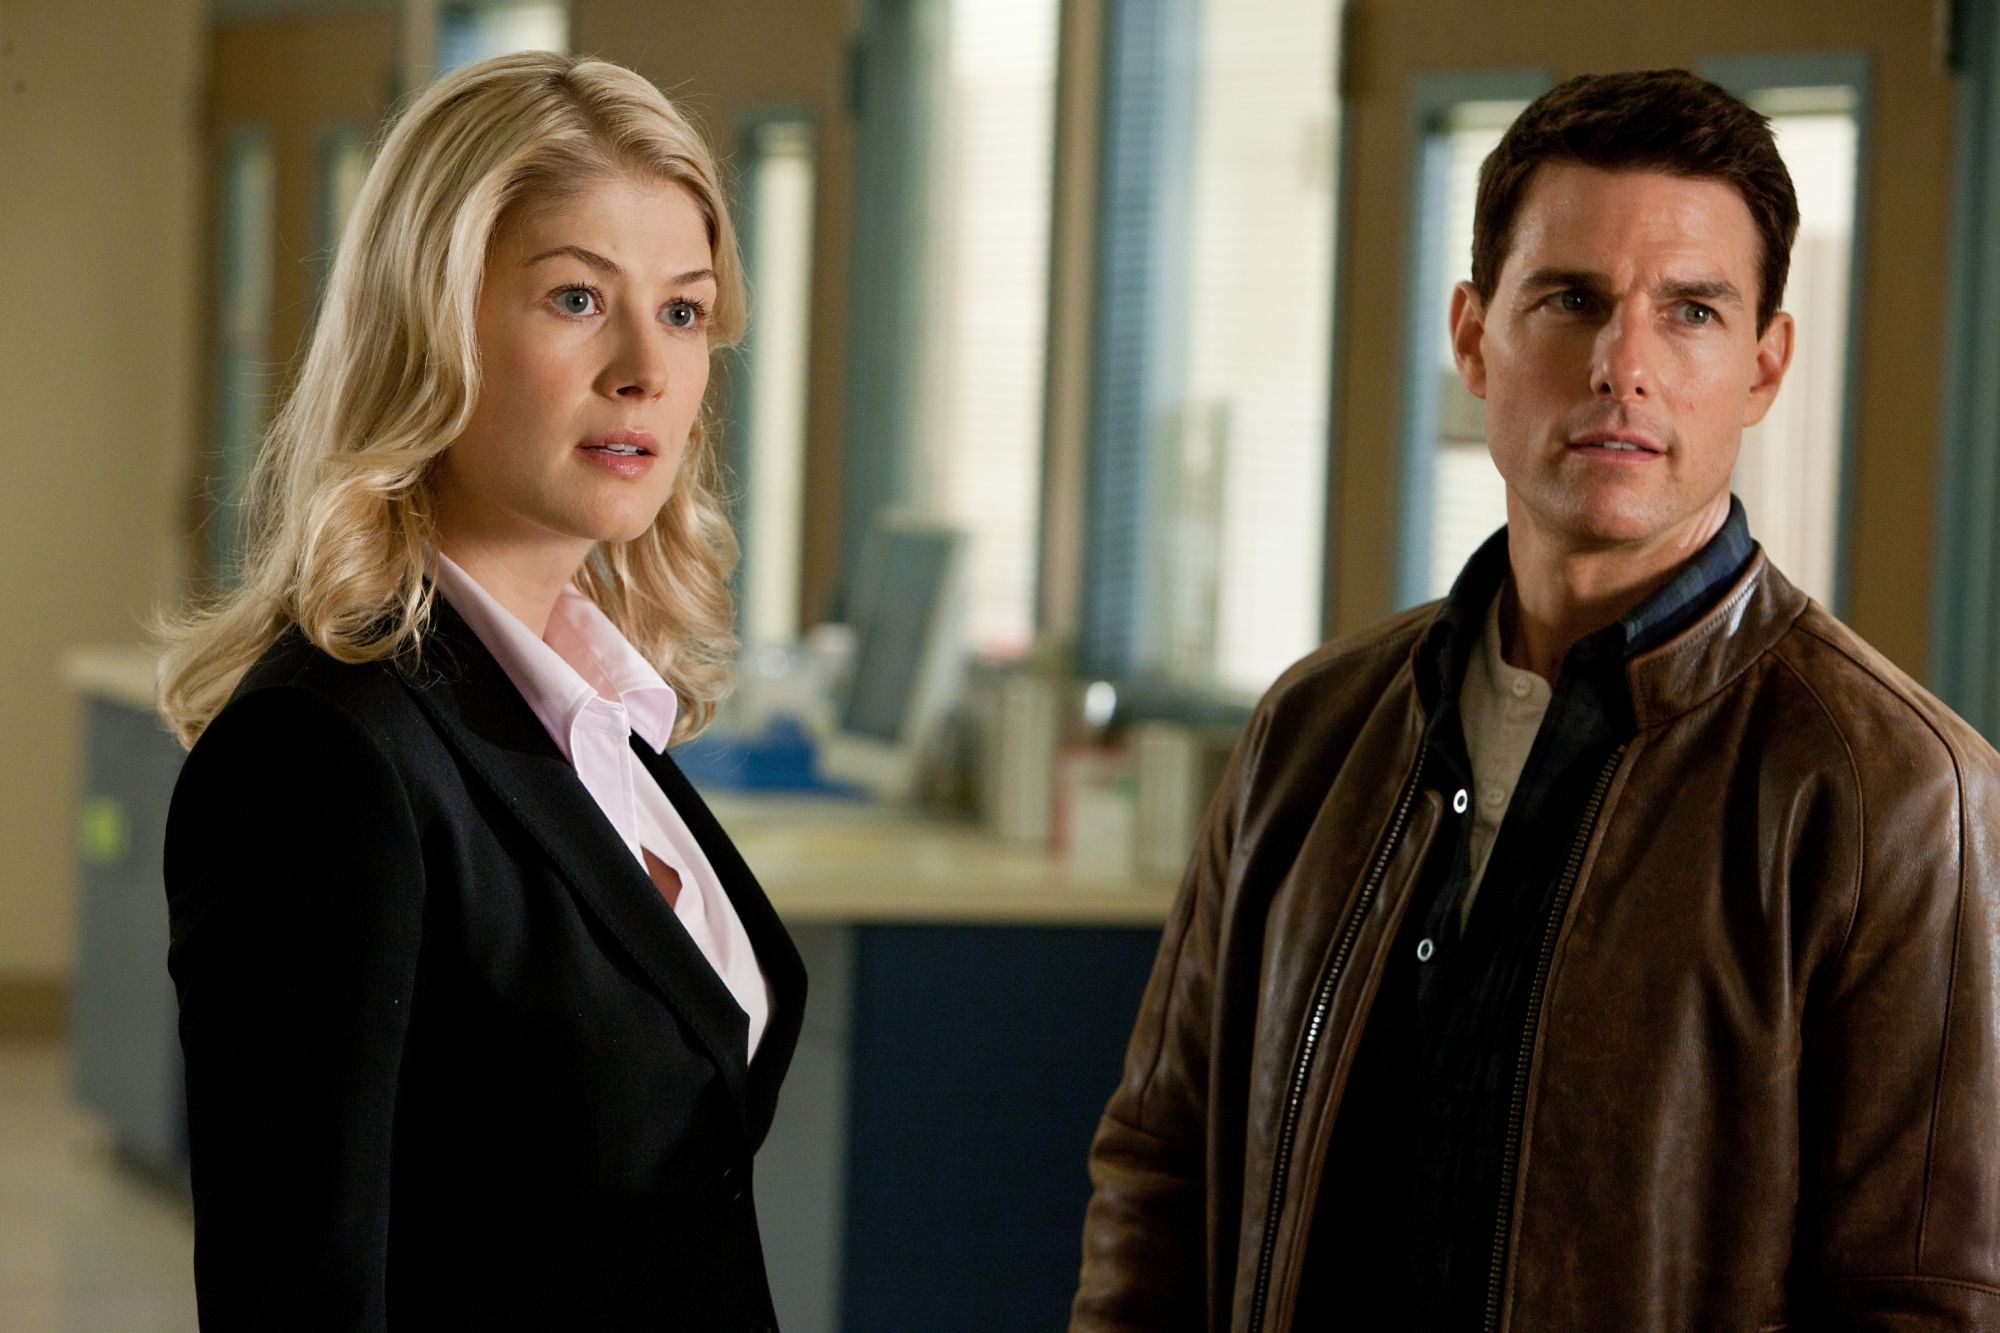 Rosamund Pike Tom Cruise In Jack Reacher 3 Made Me Want To Be A Lawyer 3 3 Rozamund Pajk Entoni Hopkins Tom Kruz